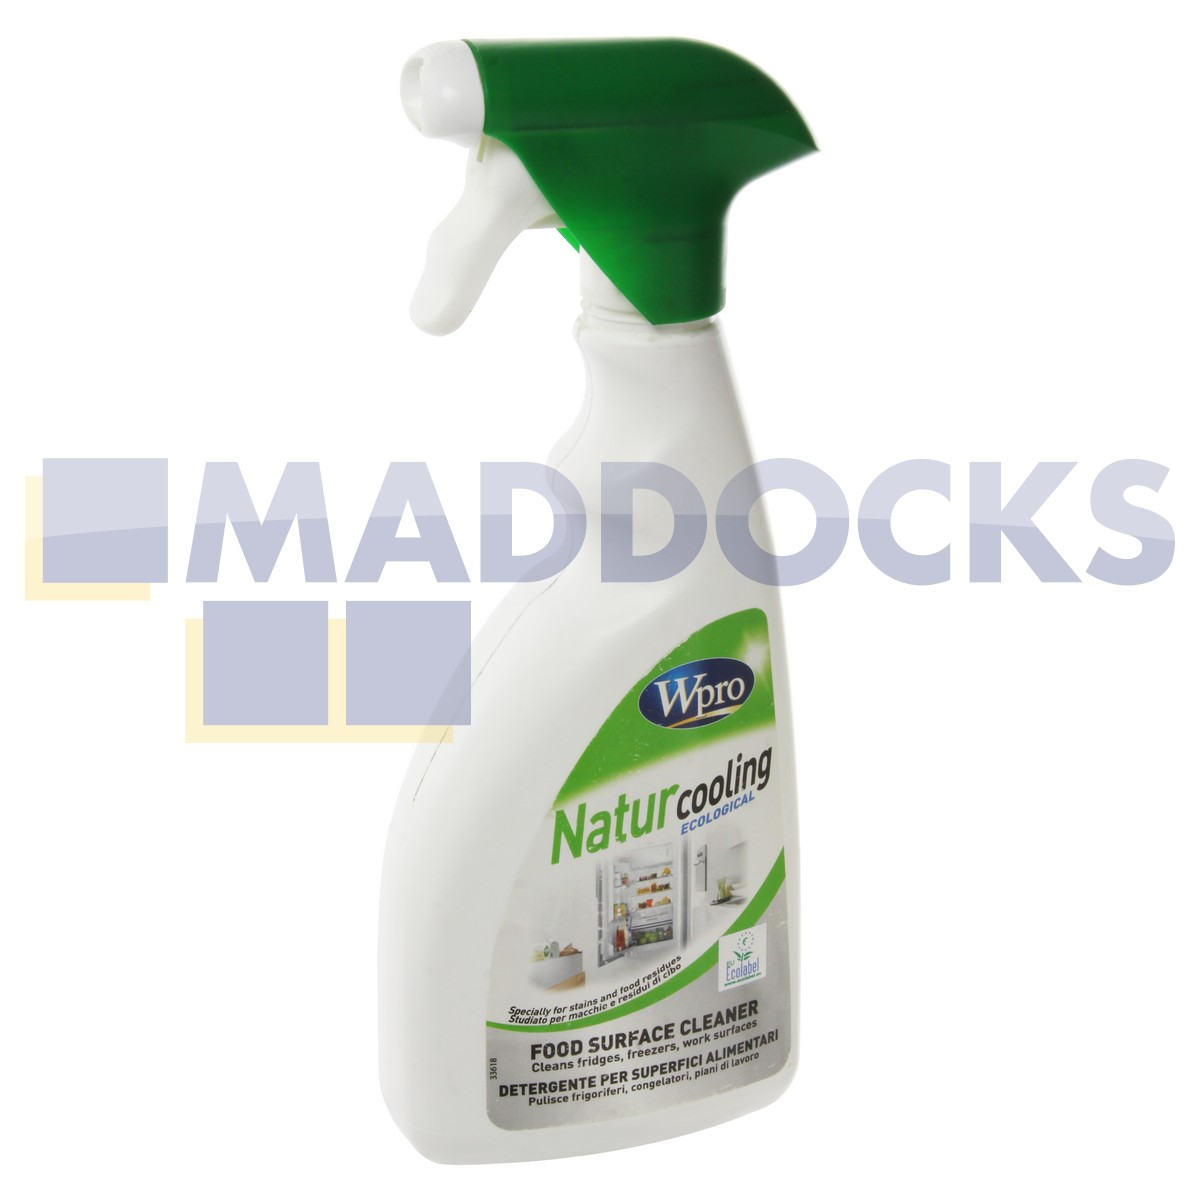 Europart Online : Eco-Label Cleaning Products from Whirlpool